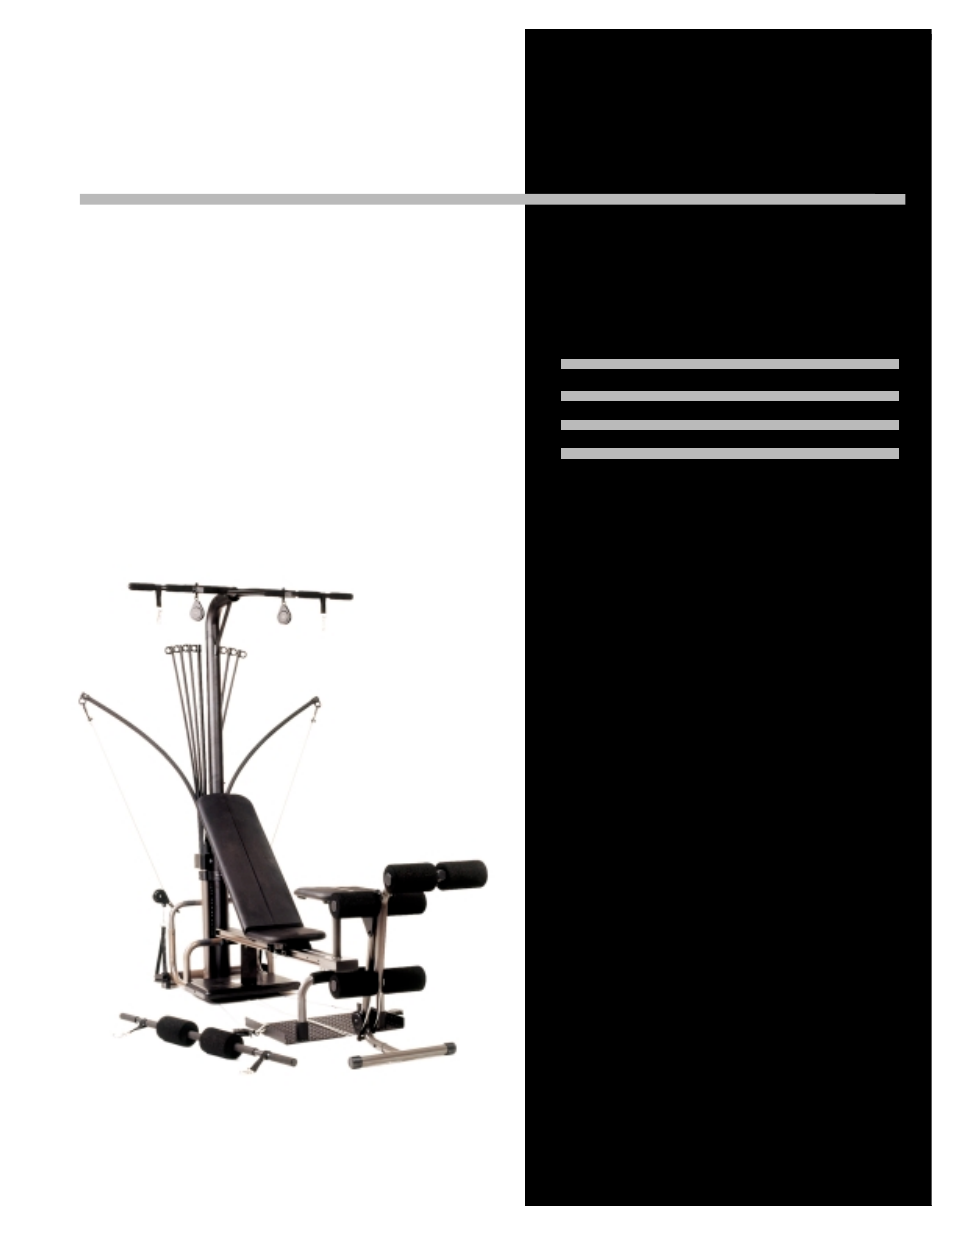 bowflex power pro xtl manuals rh manualsdir com Operators Manual Wildgame Innovations Manuals